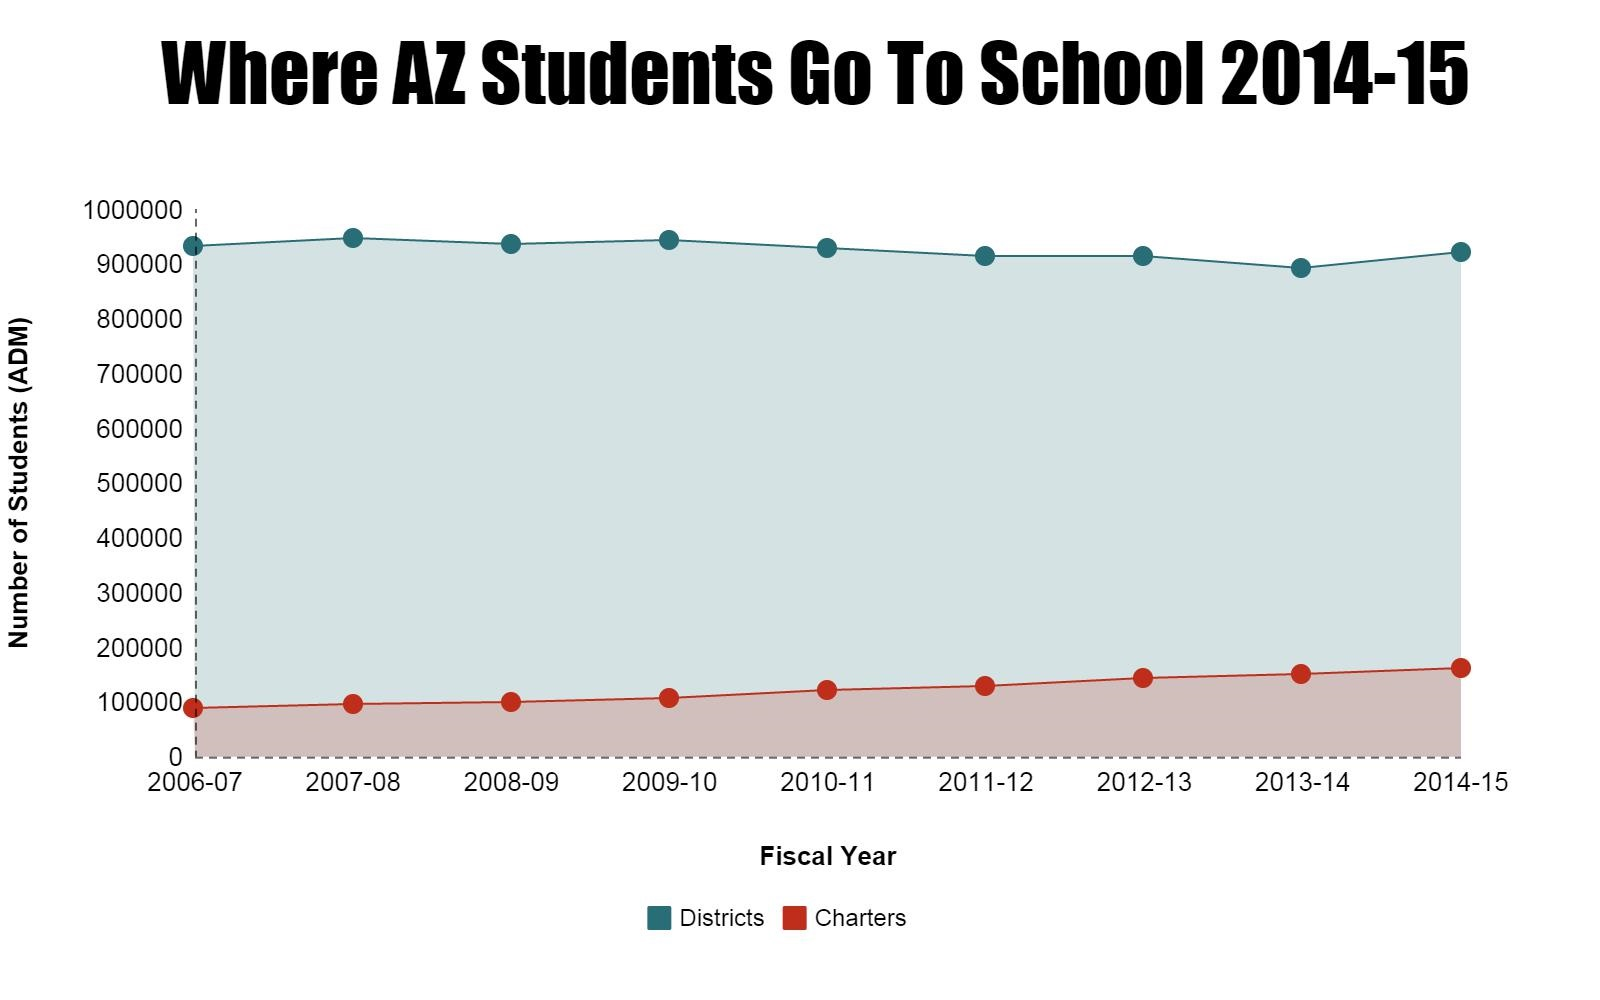 AZ student snapshot: Who they are and what's spent on them (+ Infographic) Updatedwhereazstudentsgotoschool2014-151